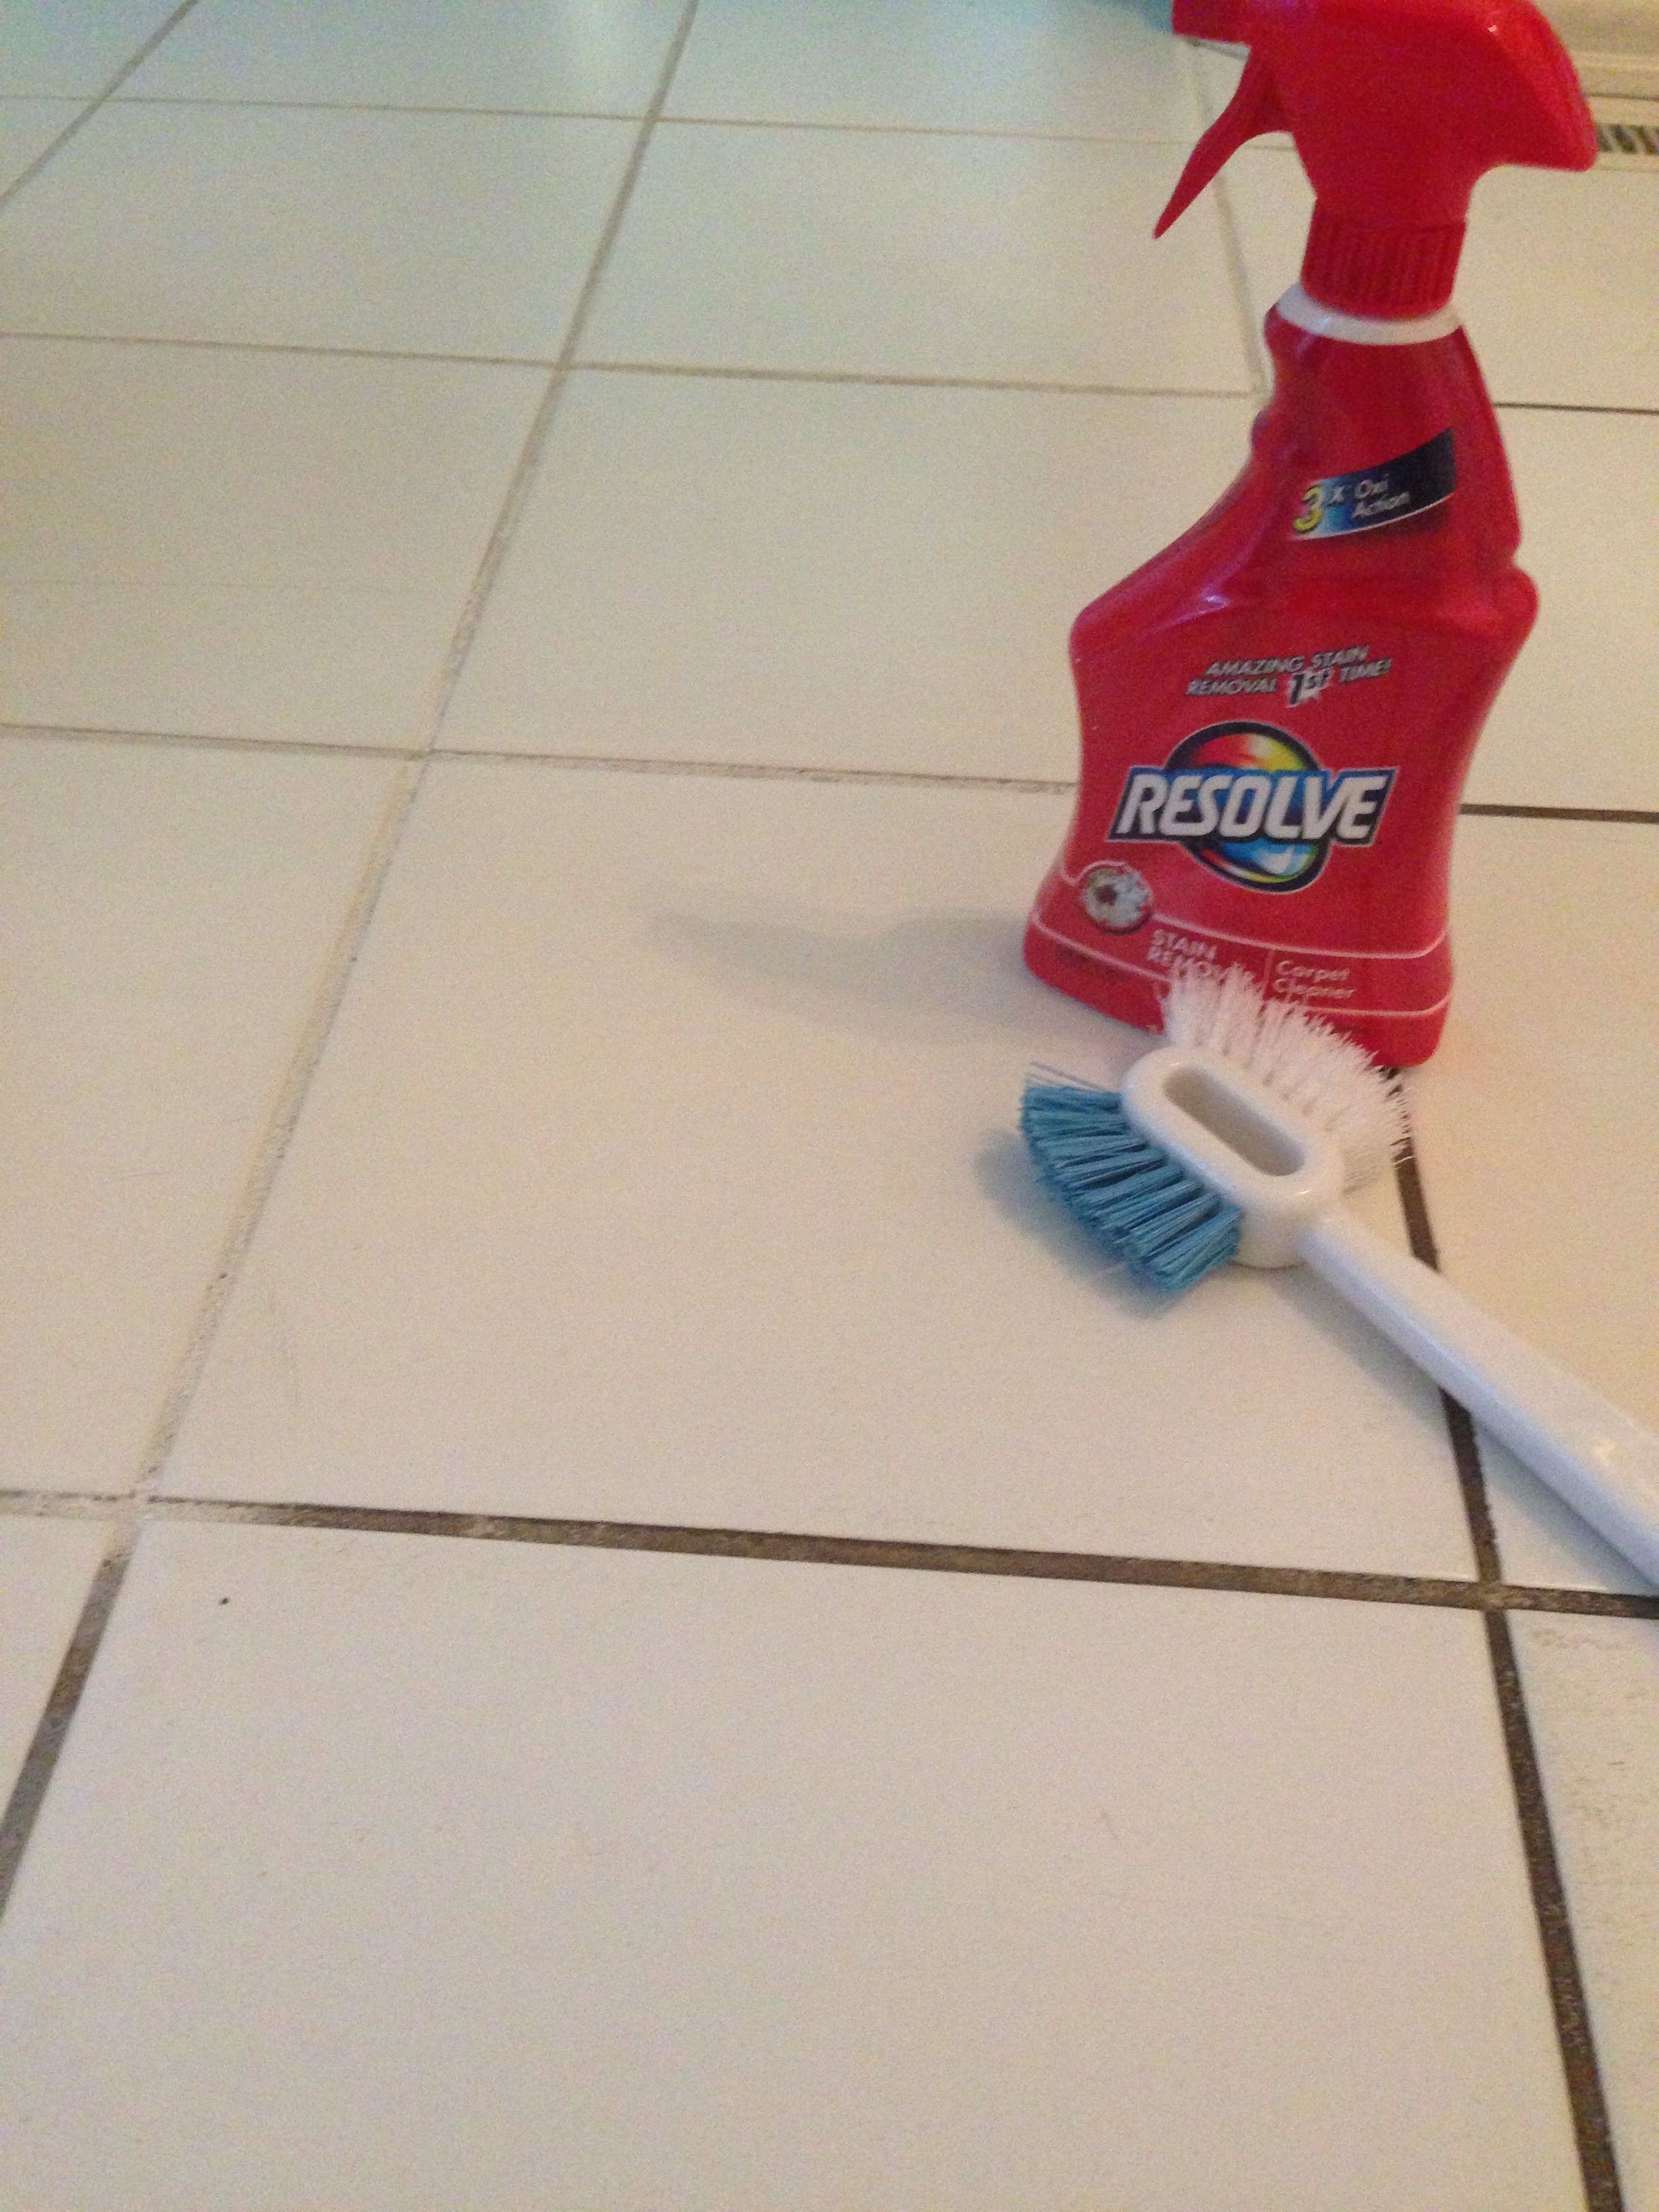 Beau I Have Been Wanting To Clean The Grout Between Our Kitchen Tiles For The  Longest Time. I Saw Some Concoctions On Pinterest Using Baking Soda And  Vinegar, ...